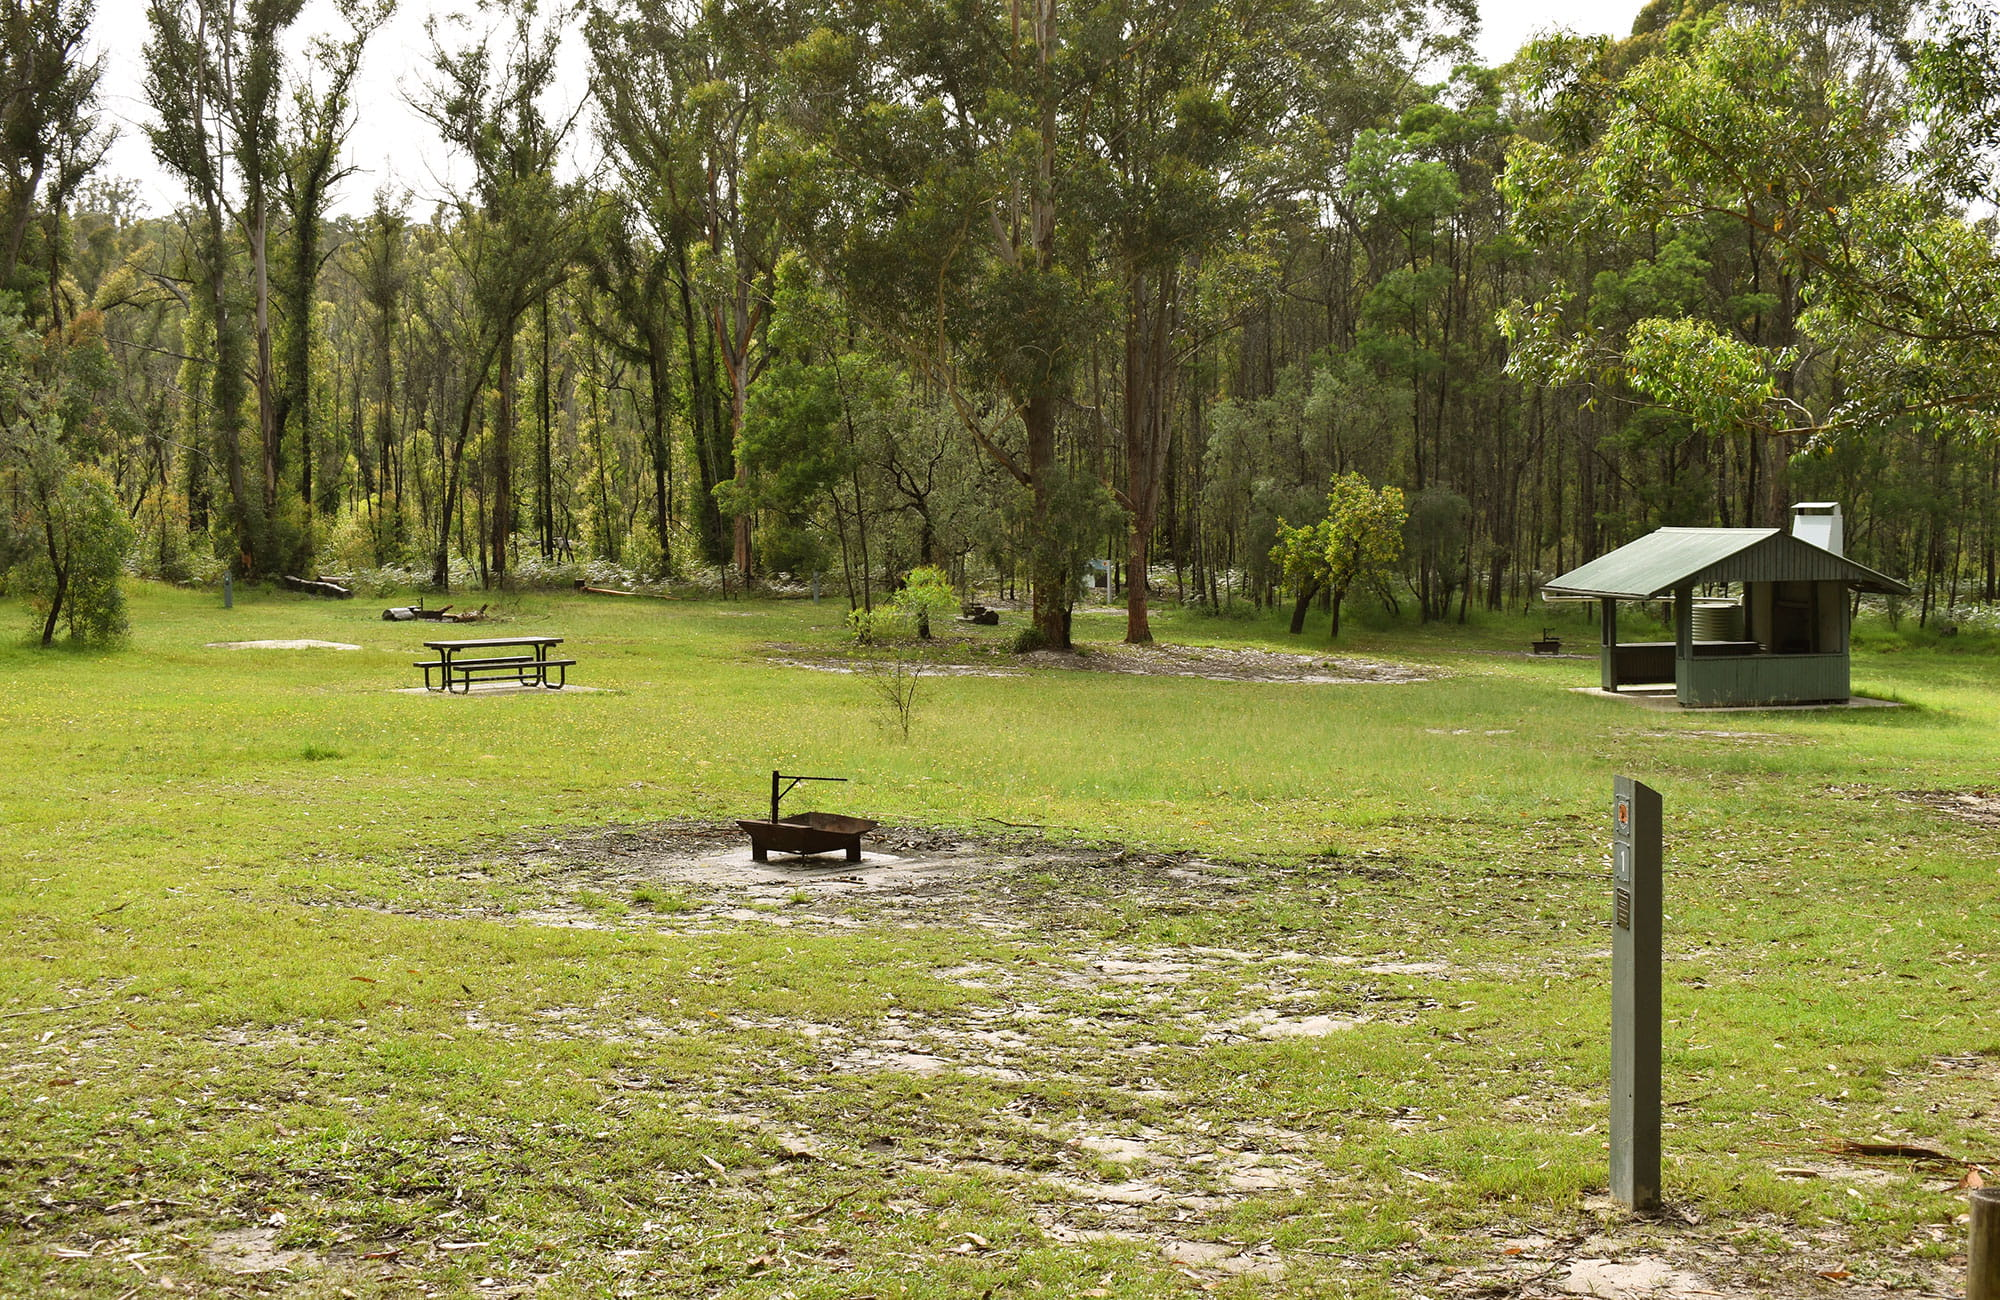 Mogo campground, Yengo National Park. Photo: Sarah Brookes © DPIE